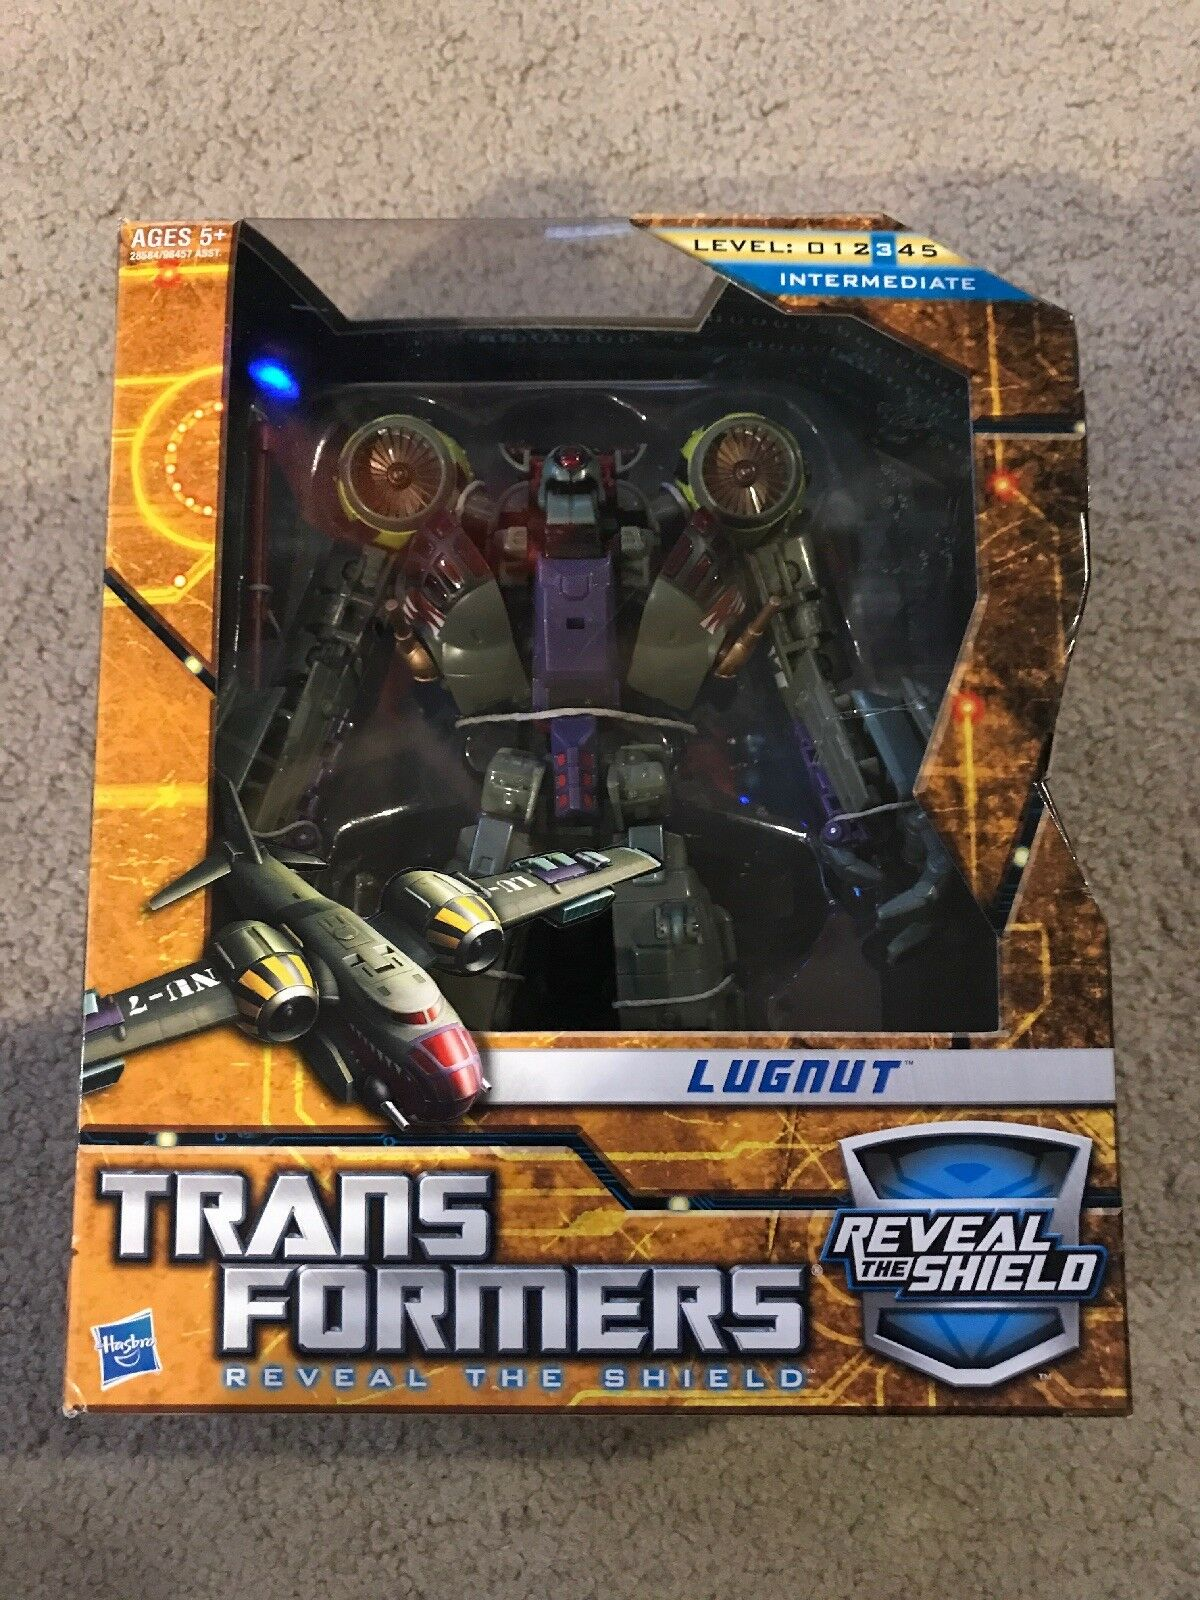 Transformers Reveal  The Shield Voyager Class lugnut nouveau  100% de contre-garantie authentique